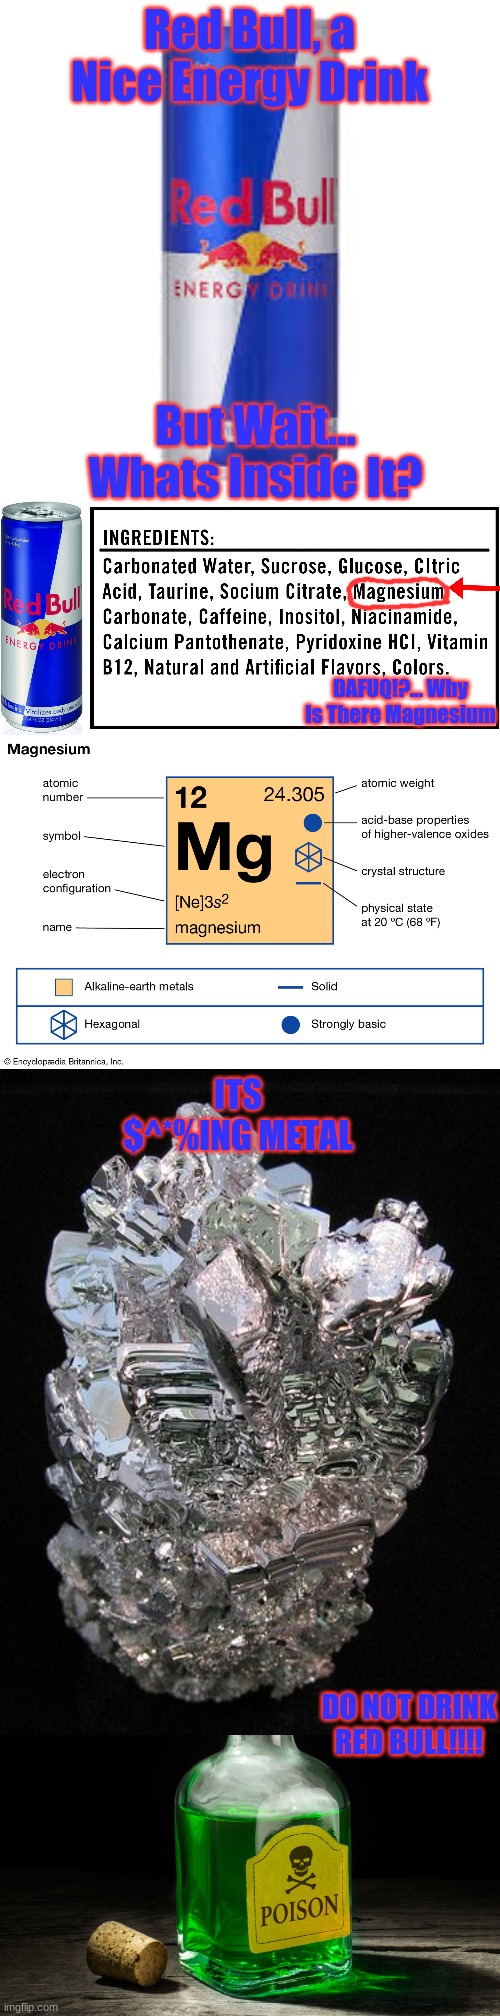 RED BULL IS DANGEROUS!! |  Red Bull, a Nice Energy Drink; But Wait... Whats Inside It? DAFUQ!?... Why Is There Magnesium; ITS $^*%ING METAL; DO NOT DRINK RED BULL!!!! | image tagged in red bull,poison,dangerous | made w/ Imgflip meme maker